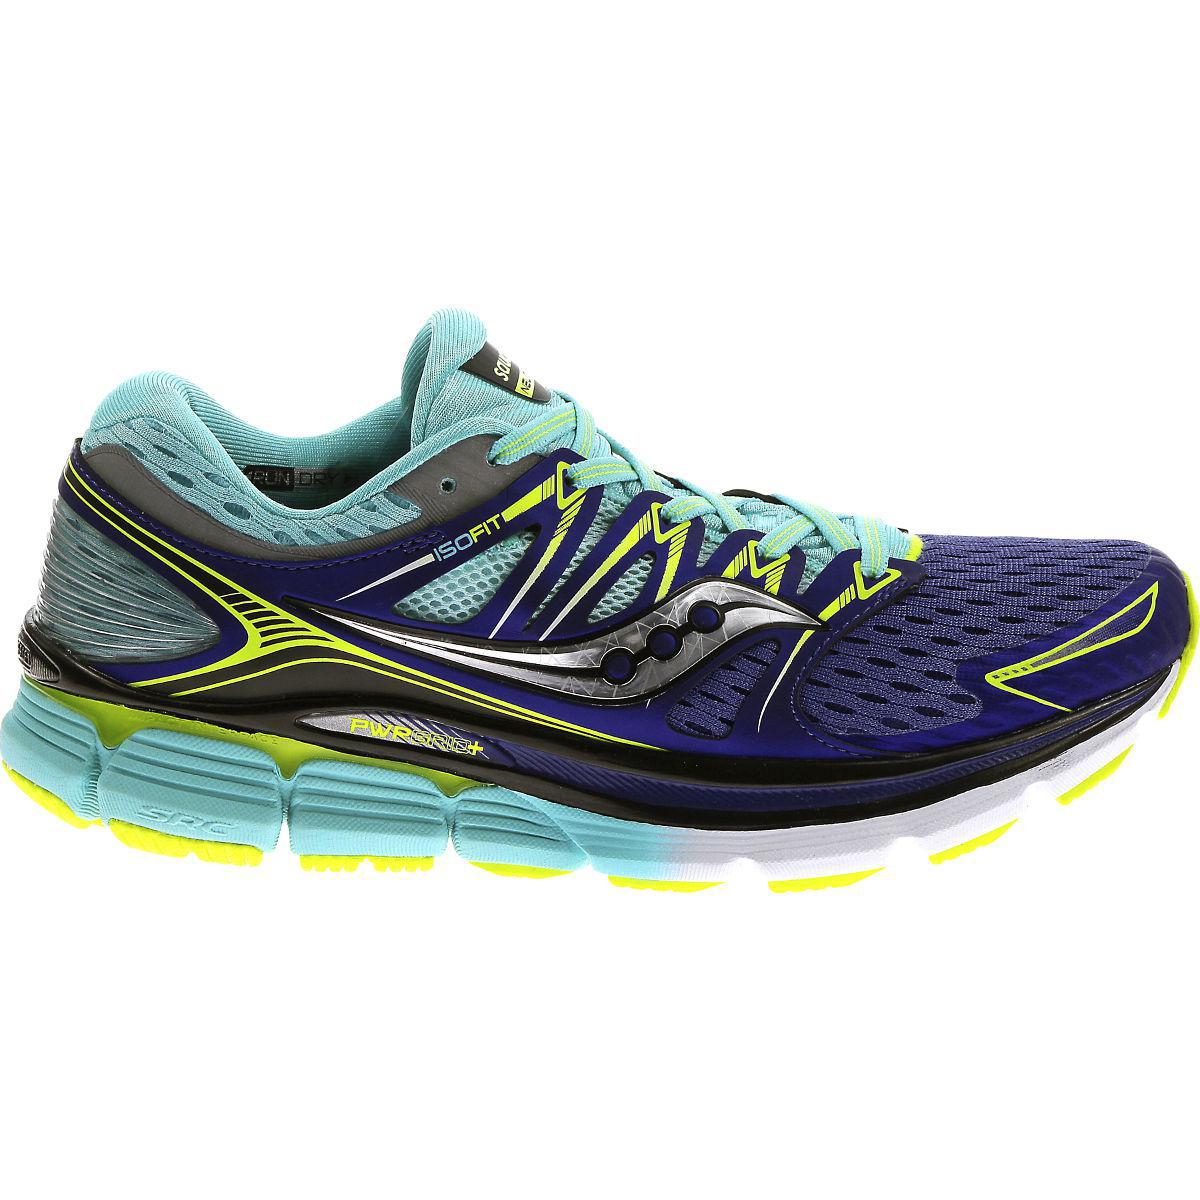 Saucony Womens Triumph ISO Running Shoes - Twilight/Oxygen/Citron